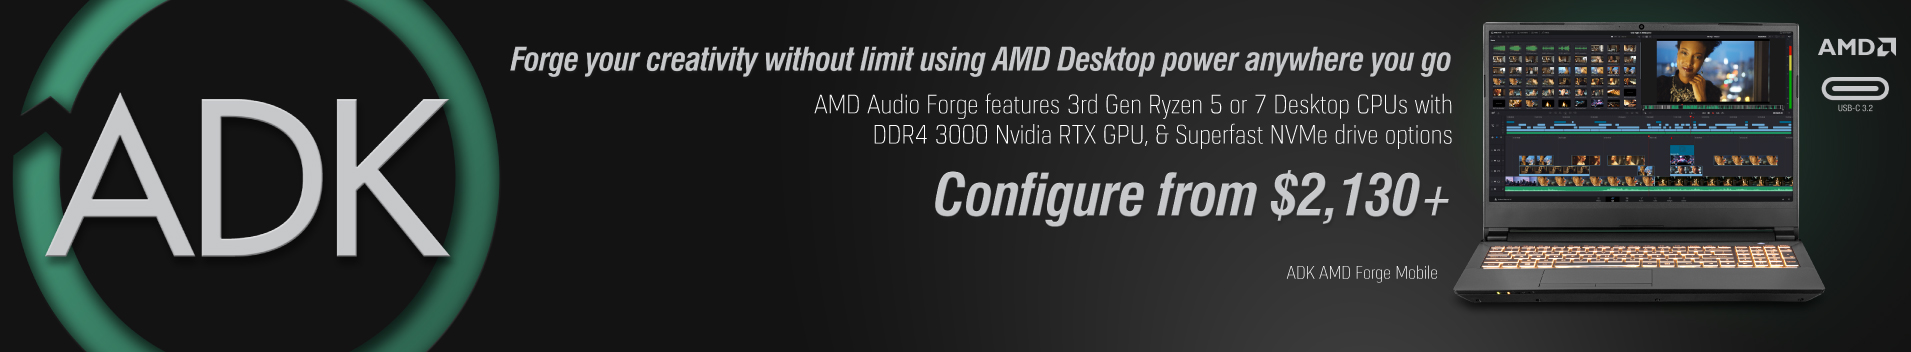 ADK AMD Forge Mobile. 3rd Generation AMD Ryzen and the AMD B450 chipset